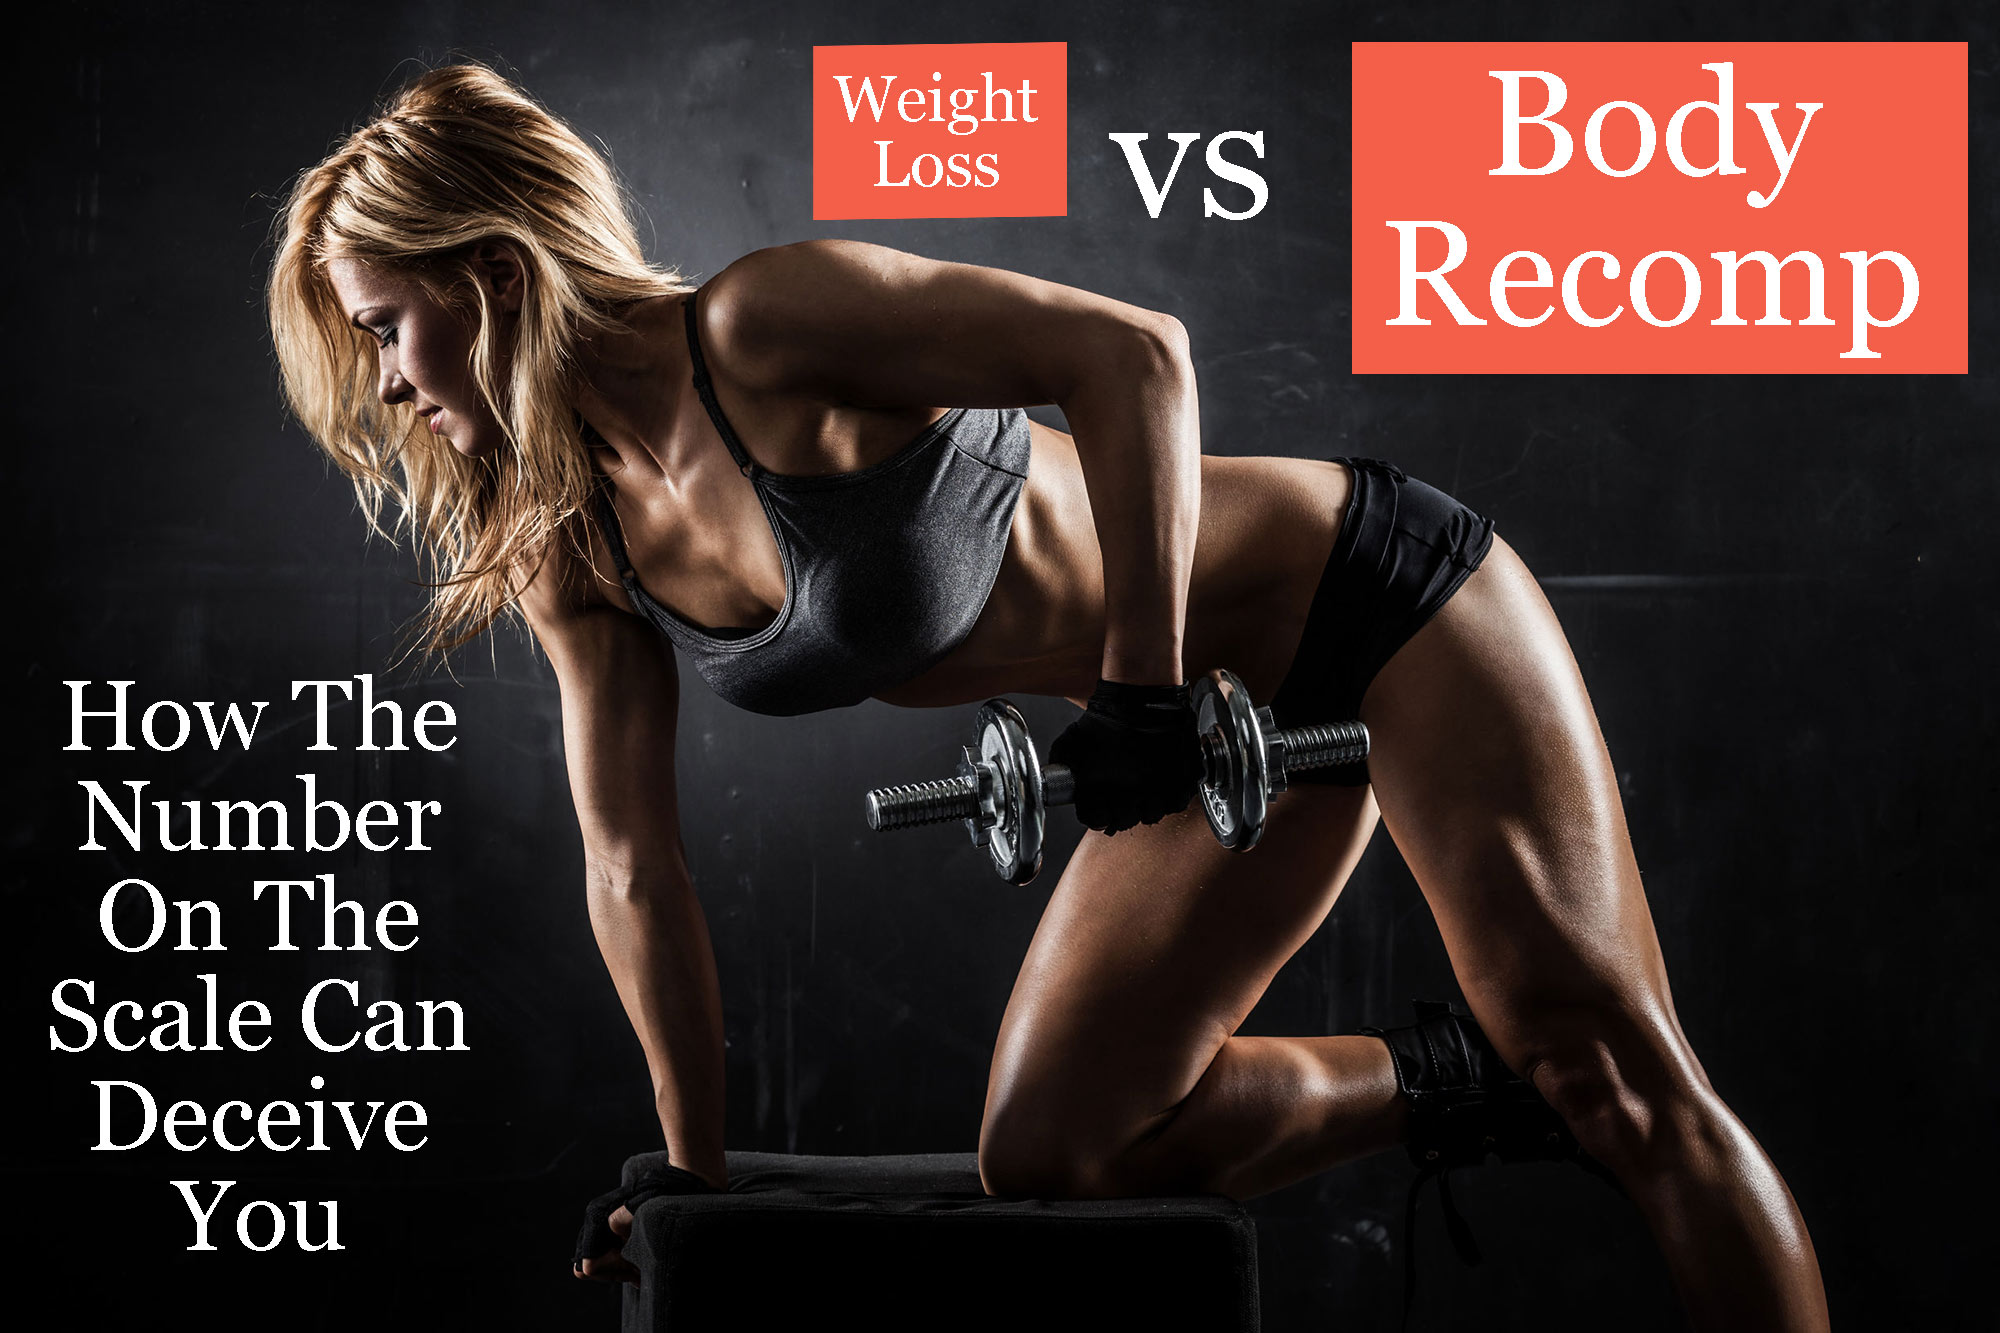 You are currently viewing Losing Weight For Wedding VS Body Recomposition